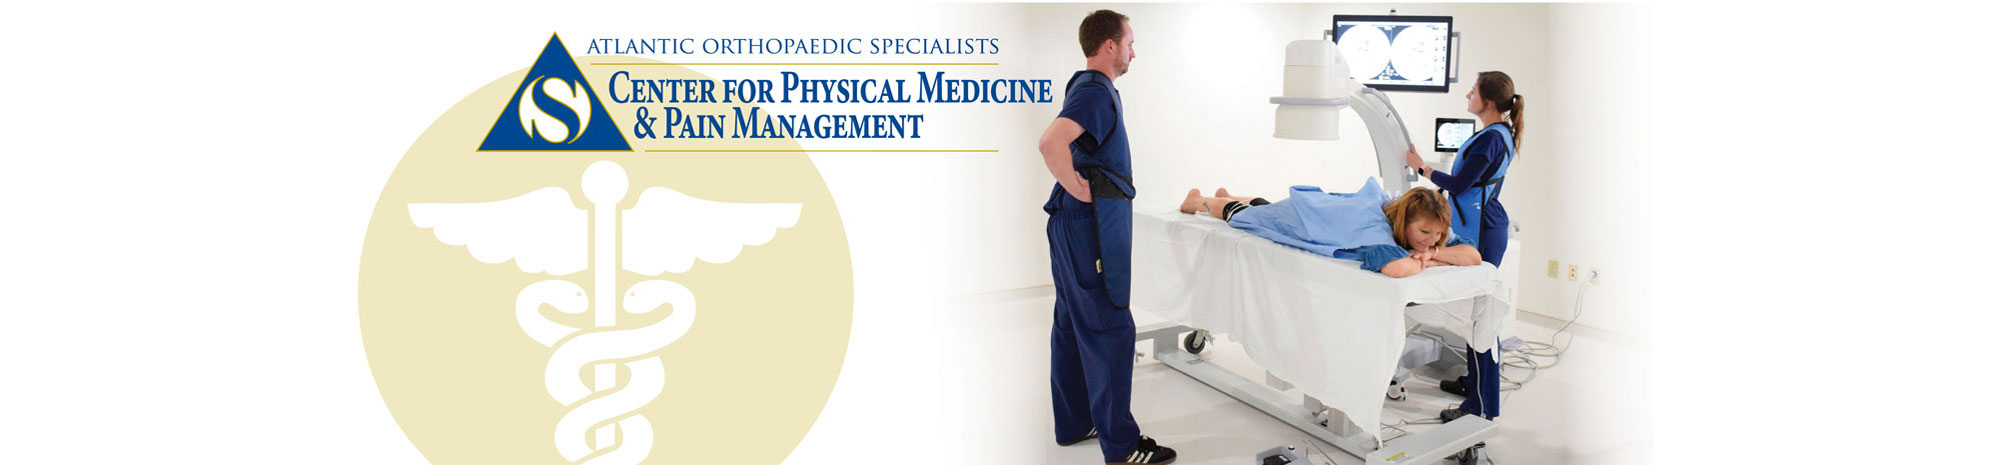 Physical Medicine and Rehabilitation Procedure Suite Image